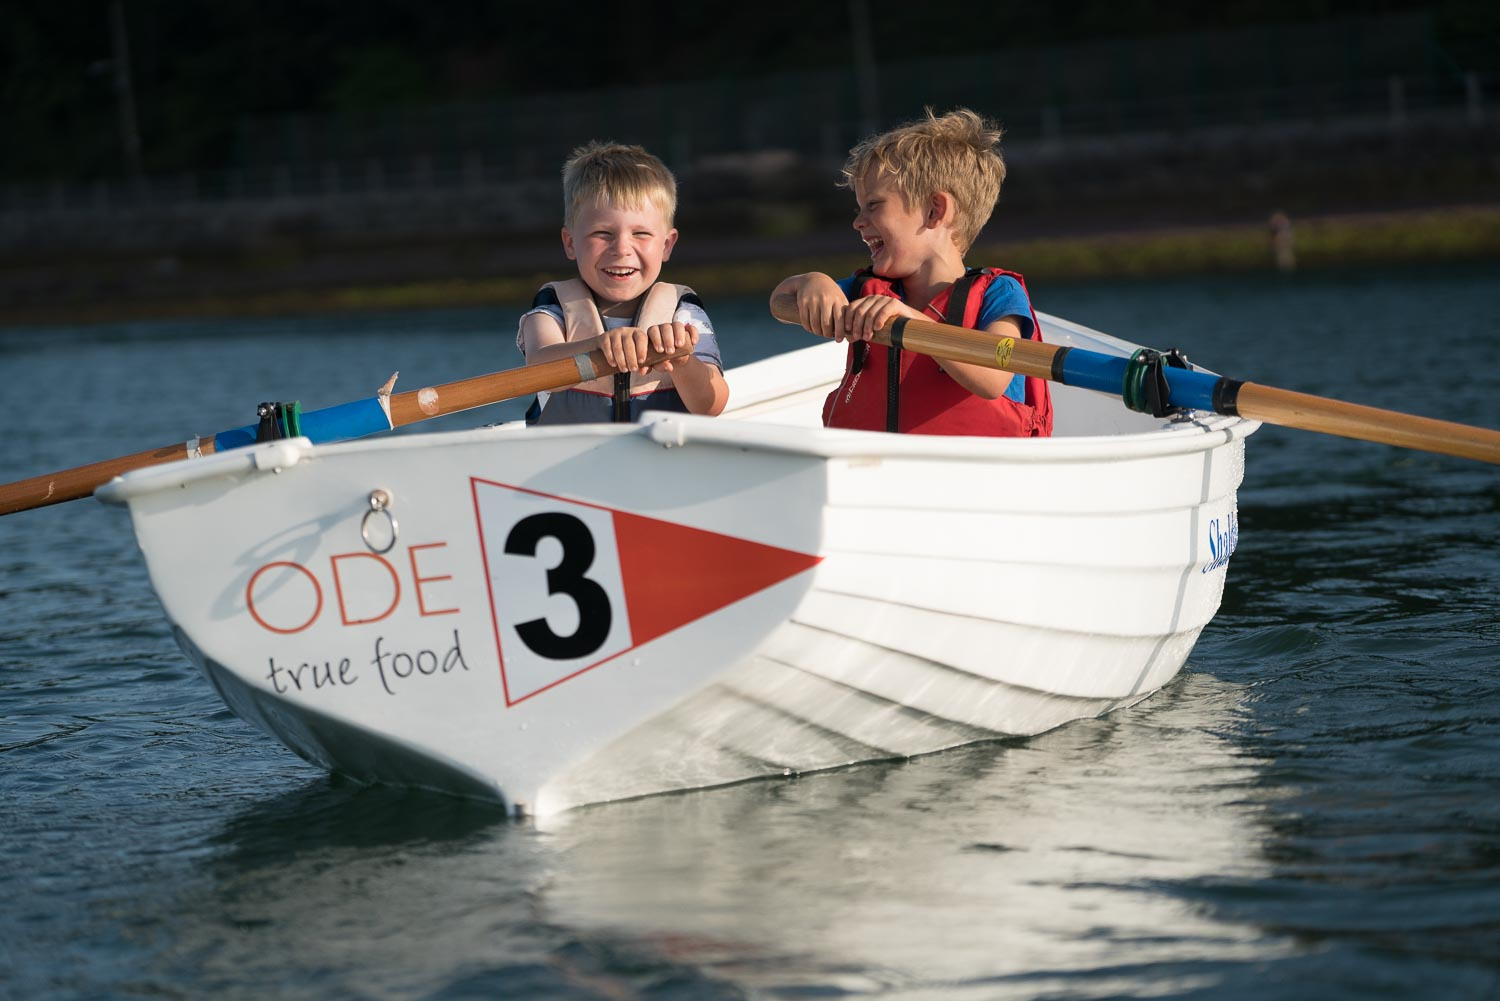 Junior rowing - We run eight sessions in the lead up to the Regatta so  any child six years and over can come and learn to row in a fun but safe environment. All equipment is provided including boats, oars, gates and life jackets. Children are teamed with an experienced cox who shows them the ropes. Register on Shaldon Beach by the Ferry Shelter at 6pm each week. £1 per child per session. Come along and give it a go! Click here for more information.